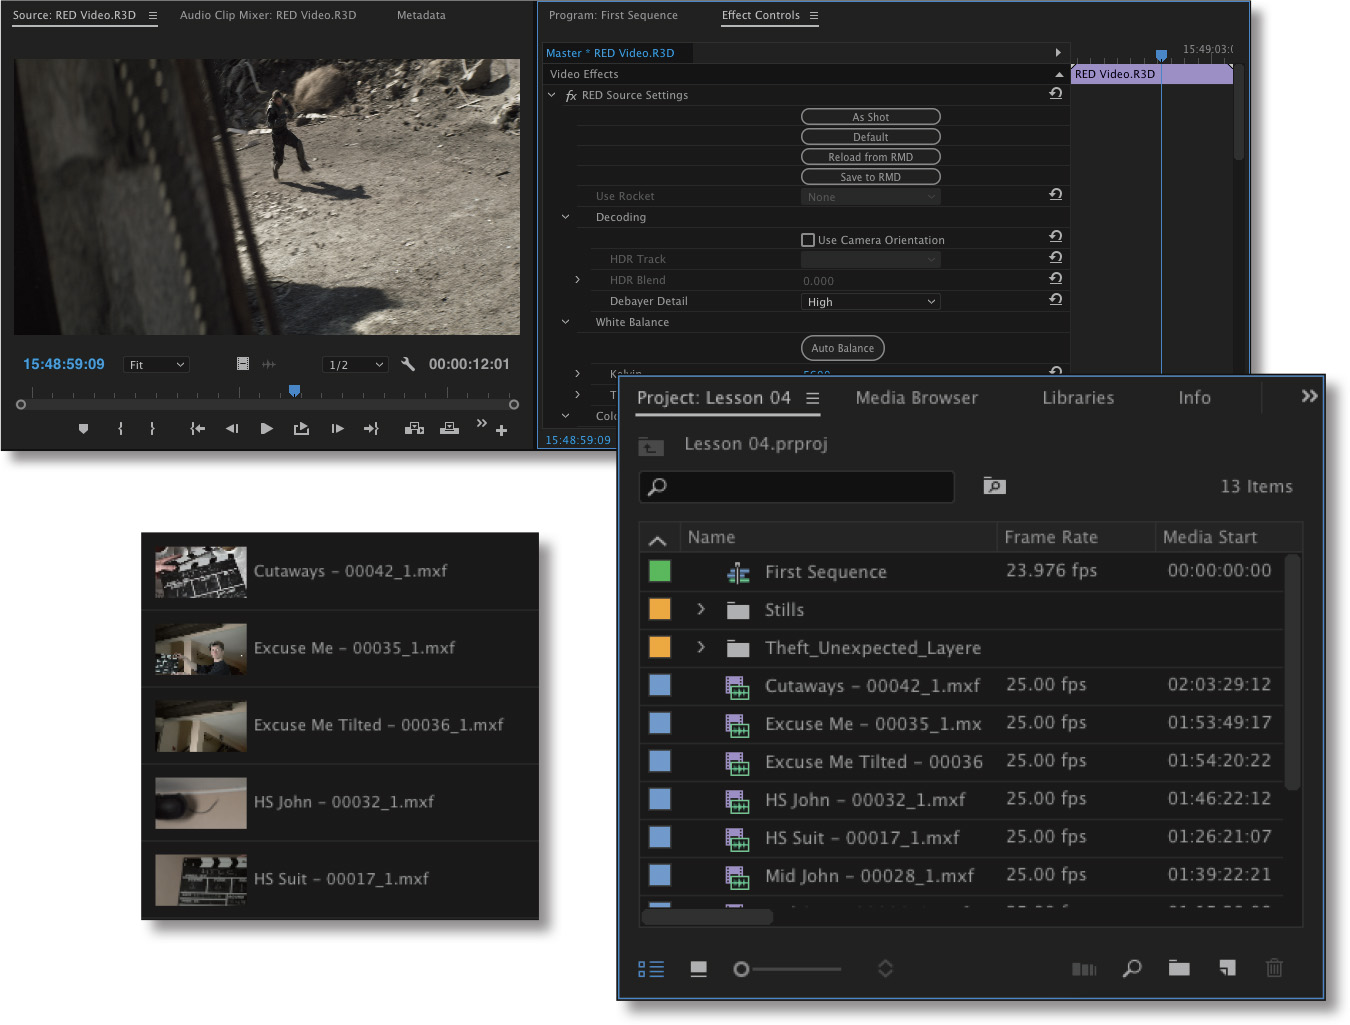 Four cascading panels of the workspace on Adobe premiere Pro: Source Monitor, Effect Controls, Media Browser, and a Cropped panel displaying thumbnails and names of video clips.